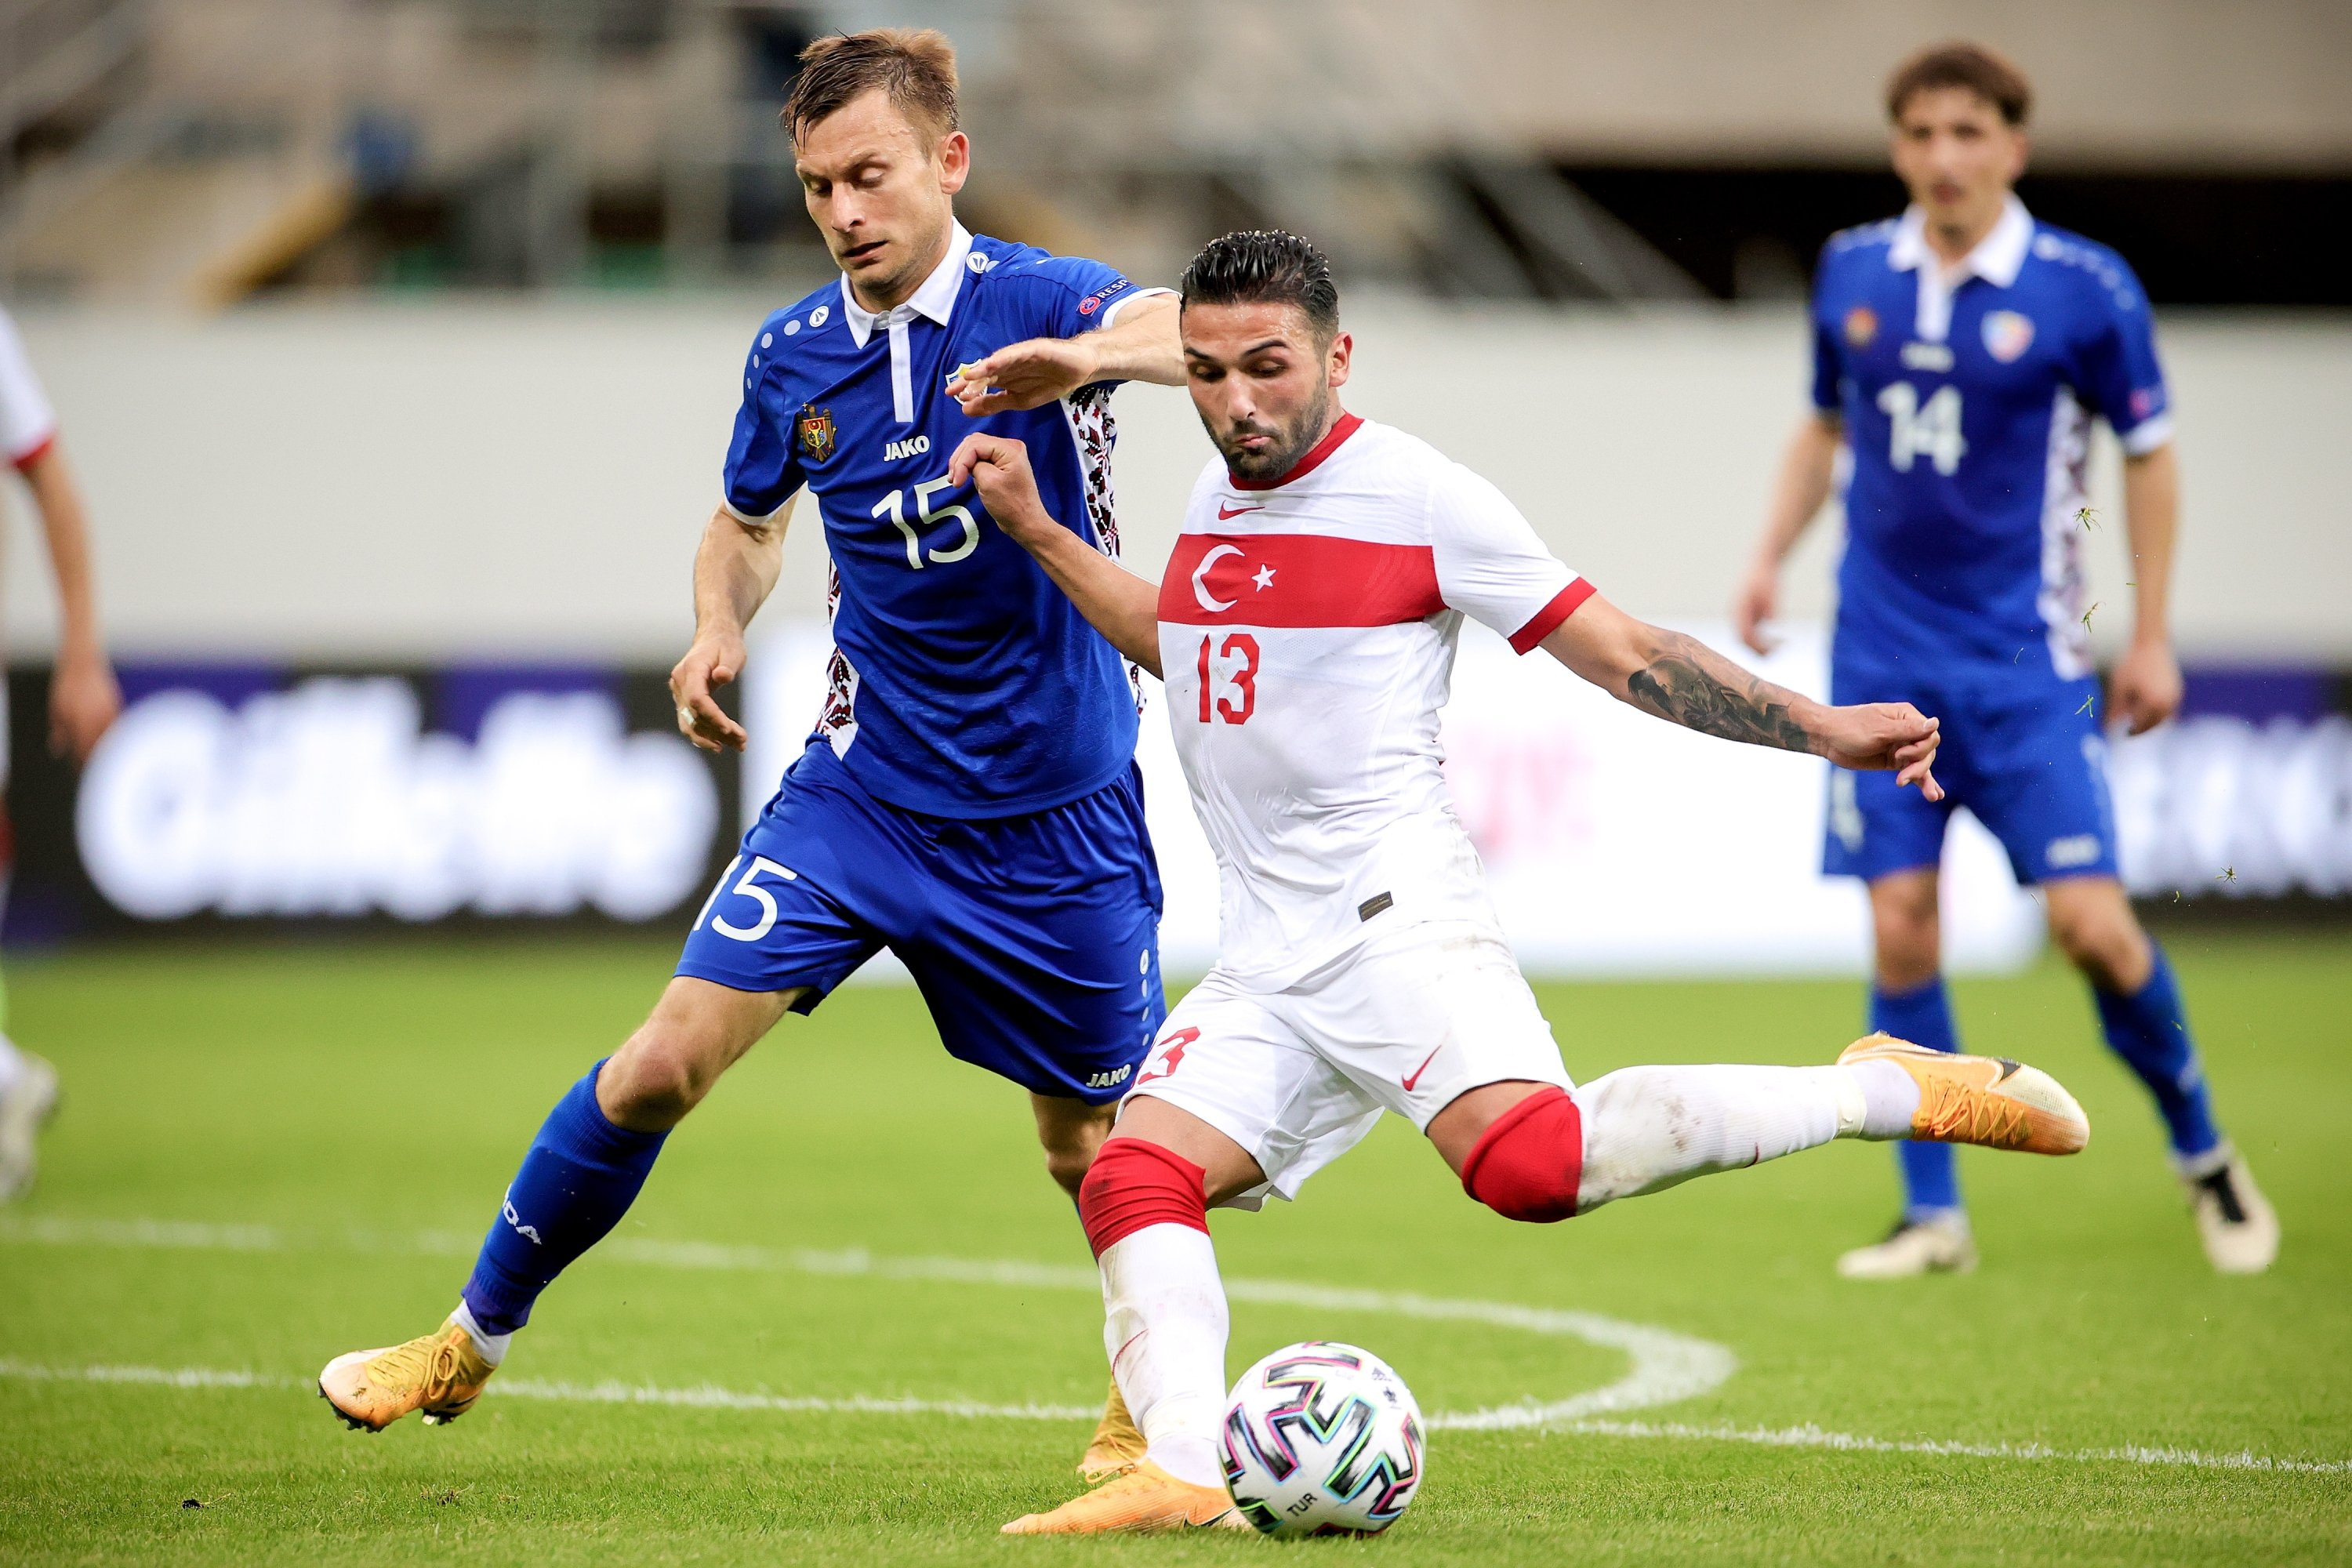 Turkey's Umut Meraş (R) in action against Moldova's Ion Jardan (L) during the International Friendly soccer match between Turkey and Moldova in Paderborn, Germany, June 3, 2021. (EPA Photo)